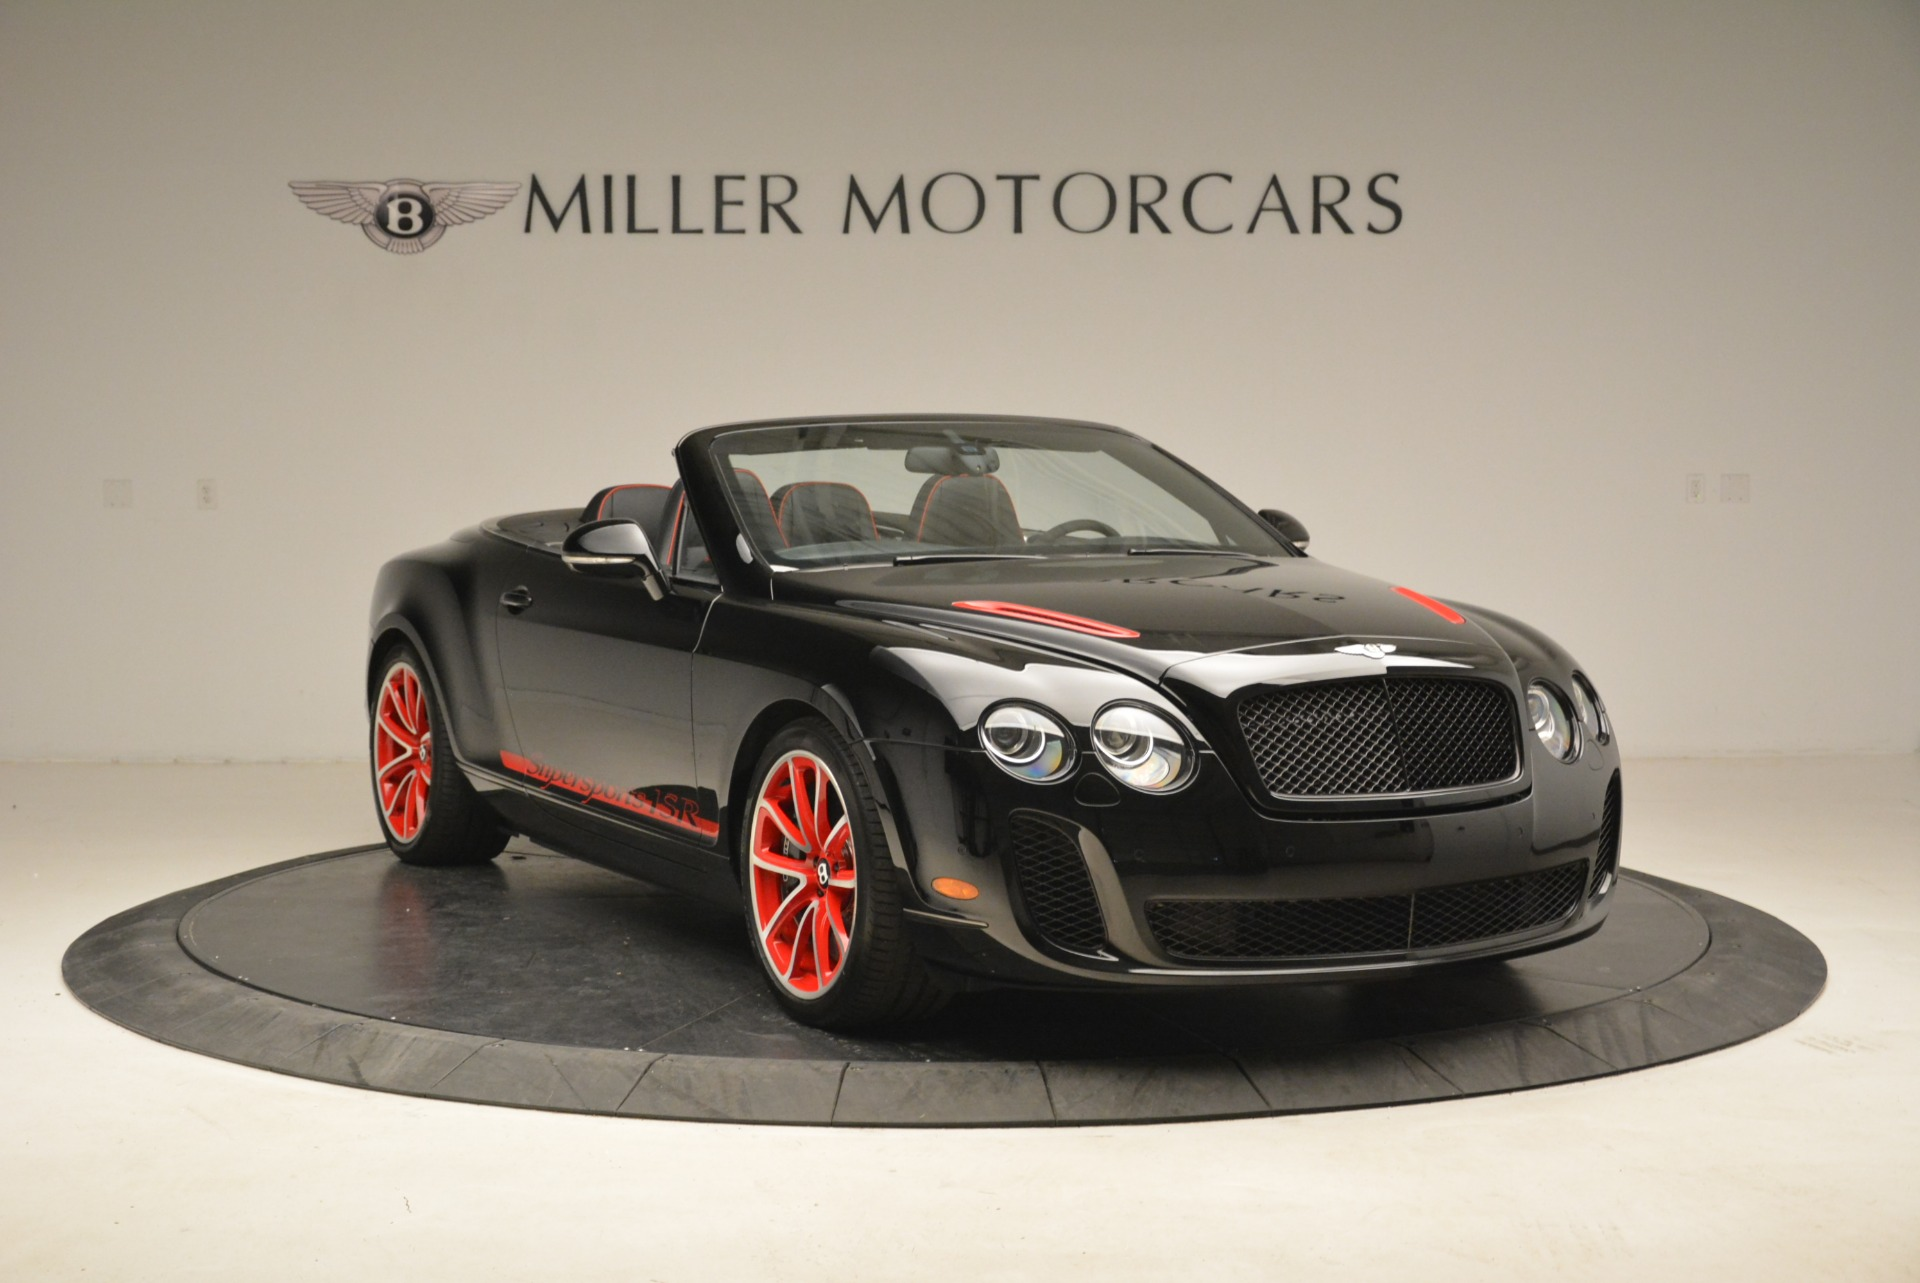 Used 2013 Bentley Continental GT Supersports Convertible ISR For Sale In Westport, CT 2151_p11